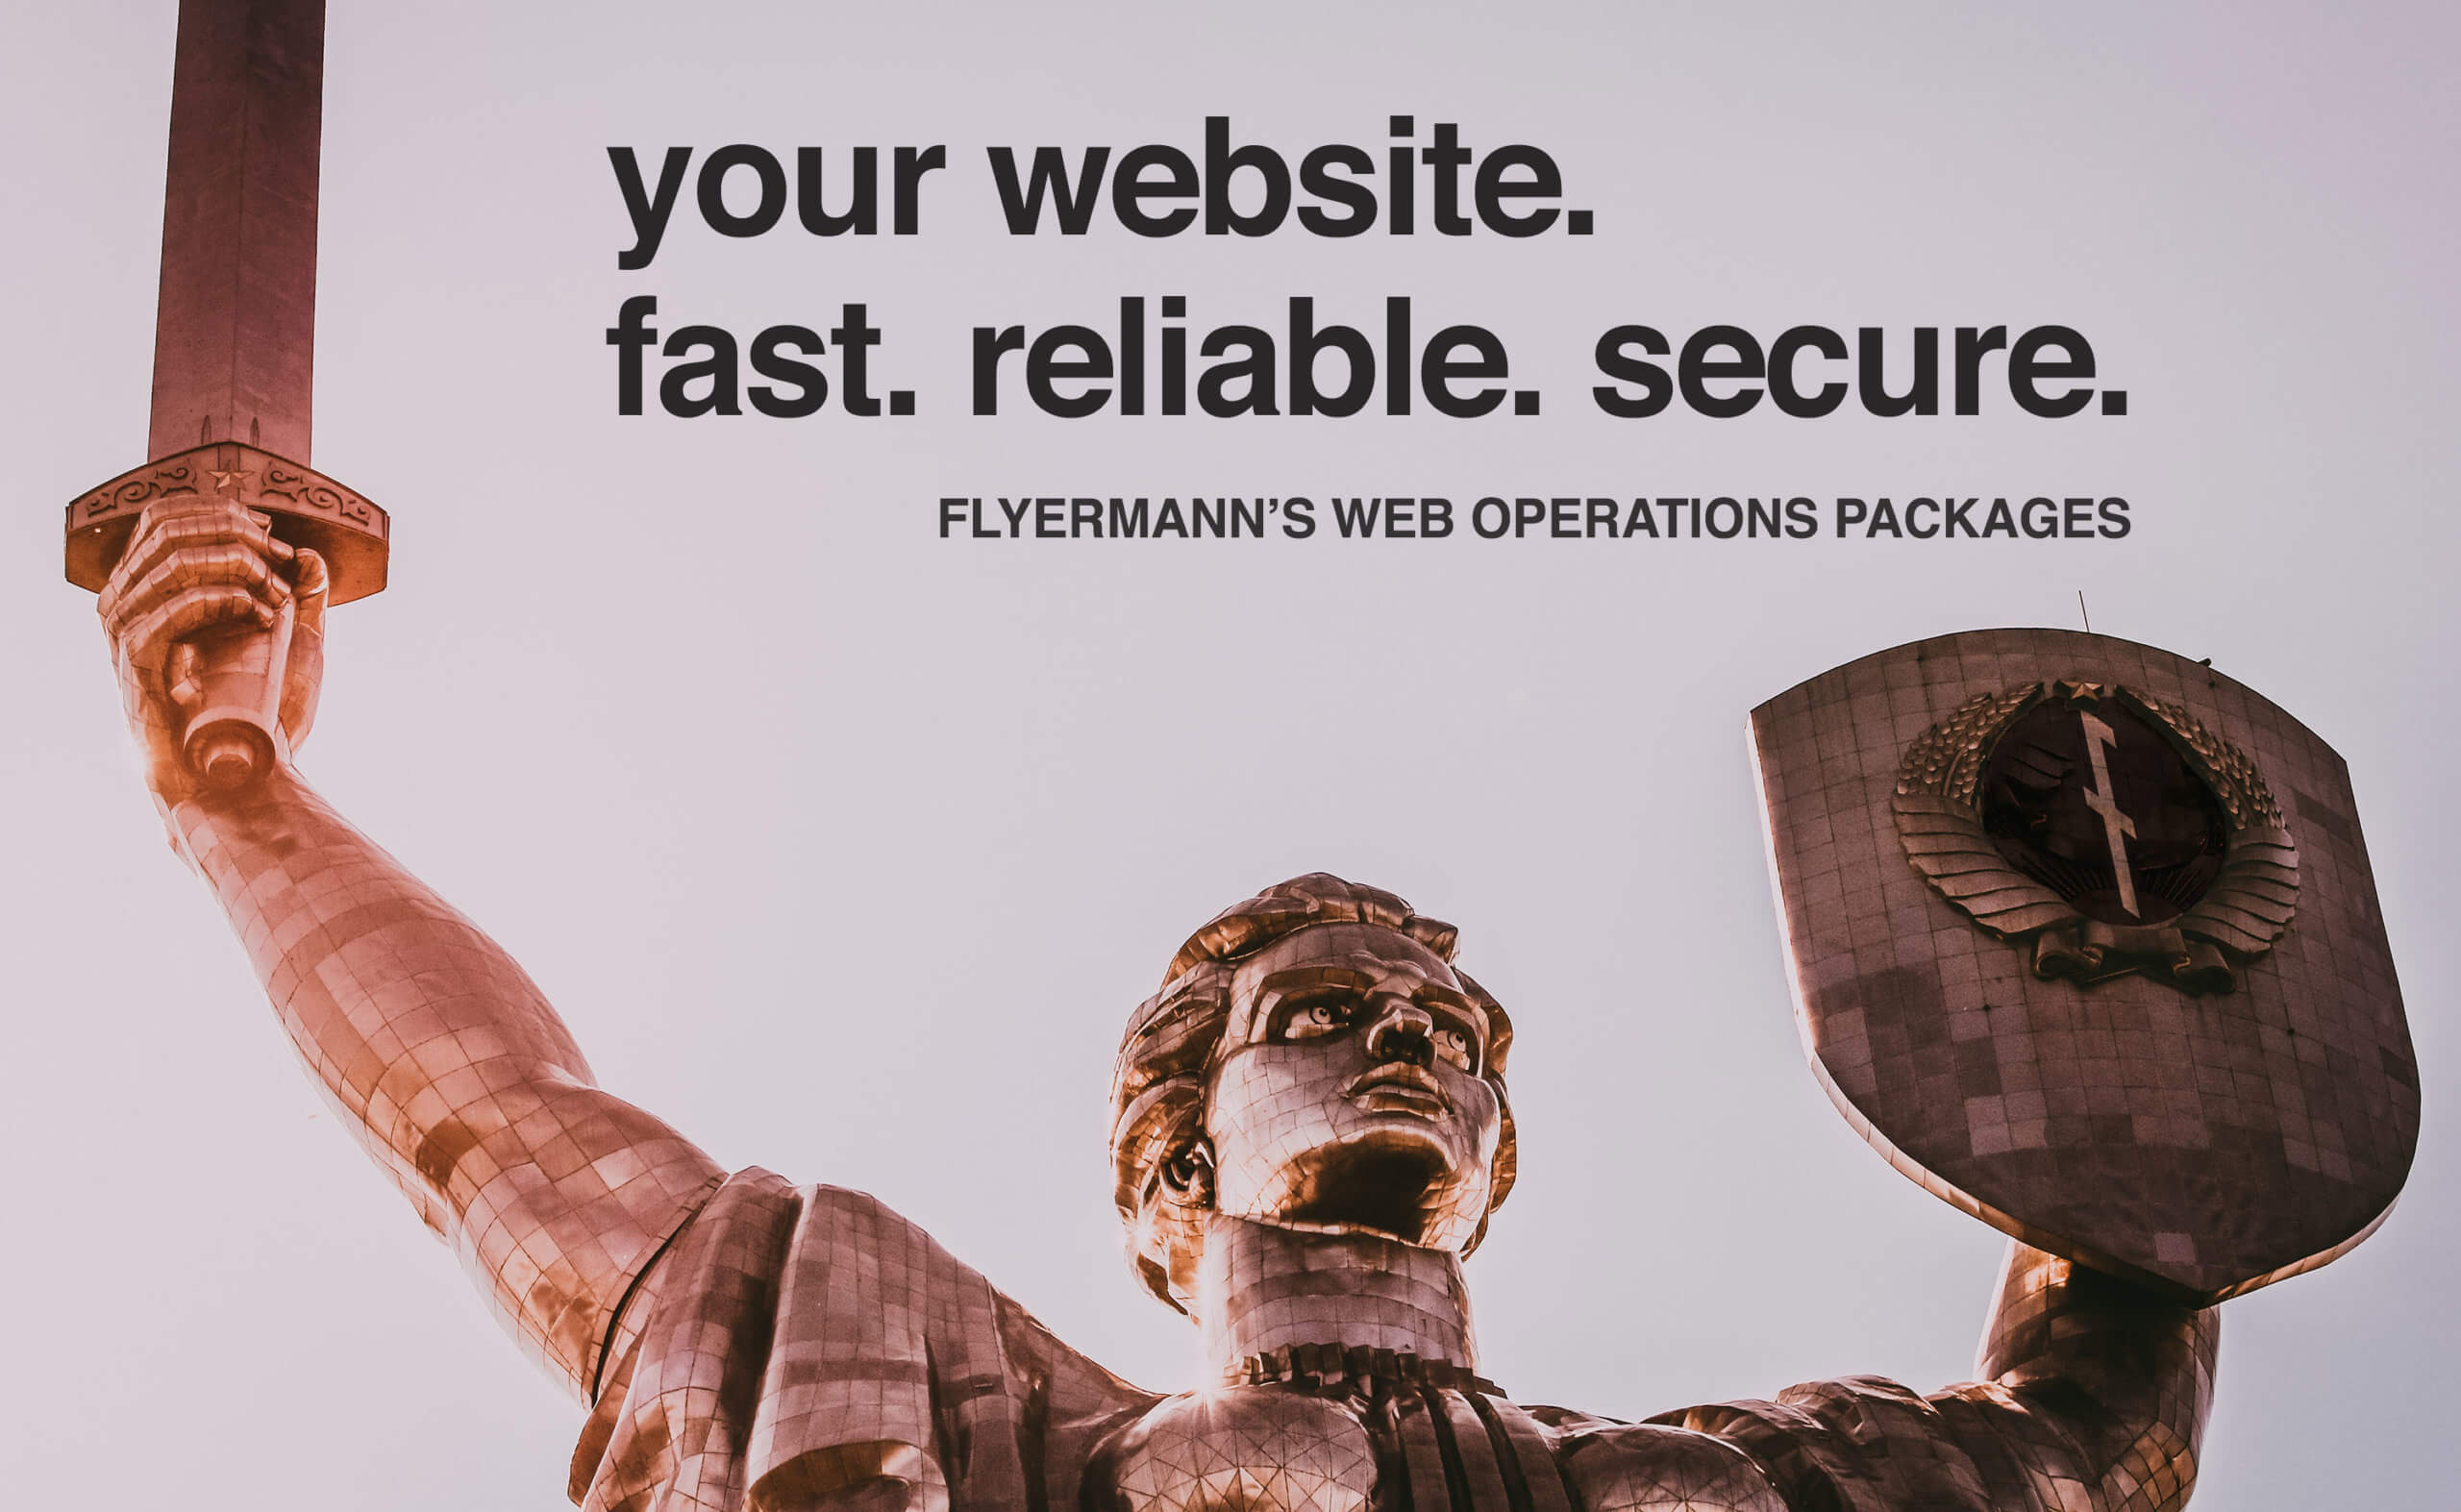 Your website, fast, reliable, secure.